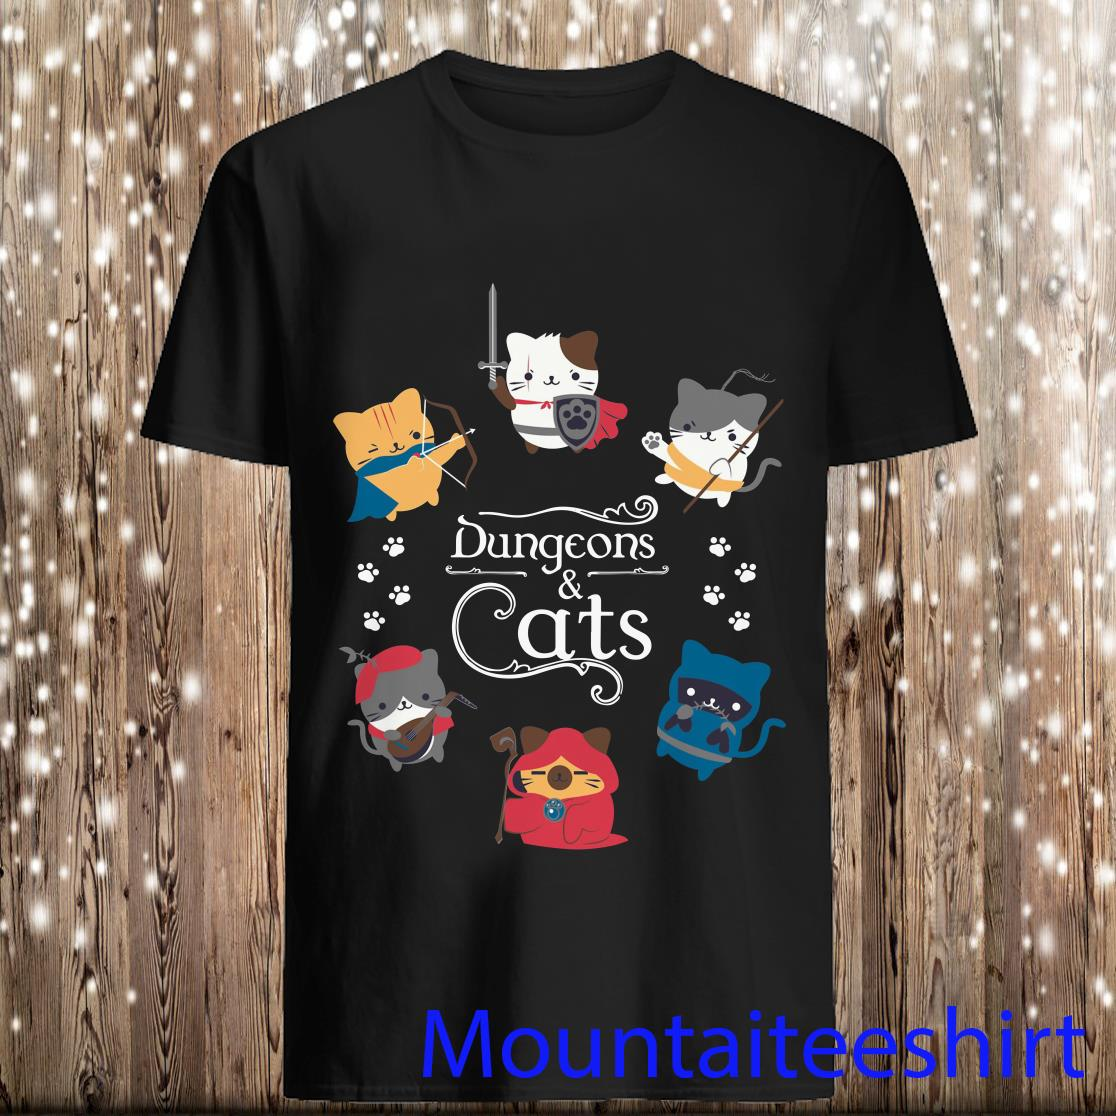 https://www.moteefe.com/store/dungeons-and-cats-t-shirts